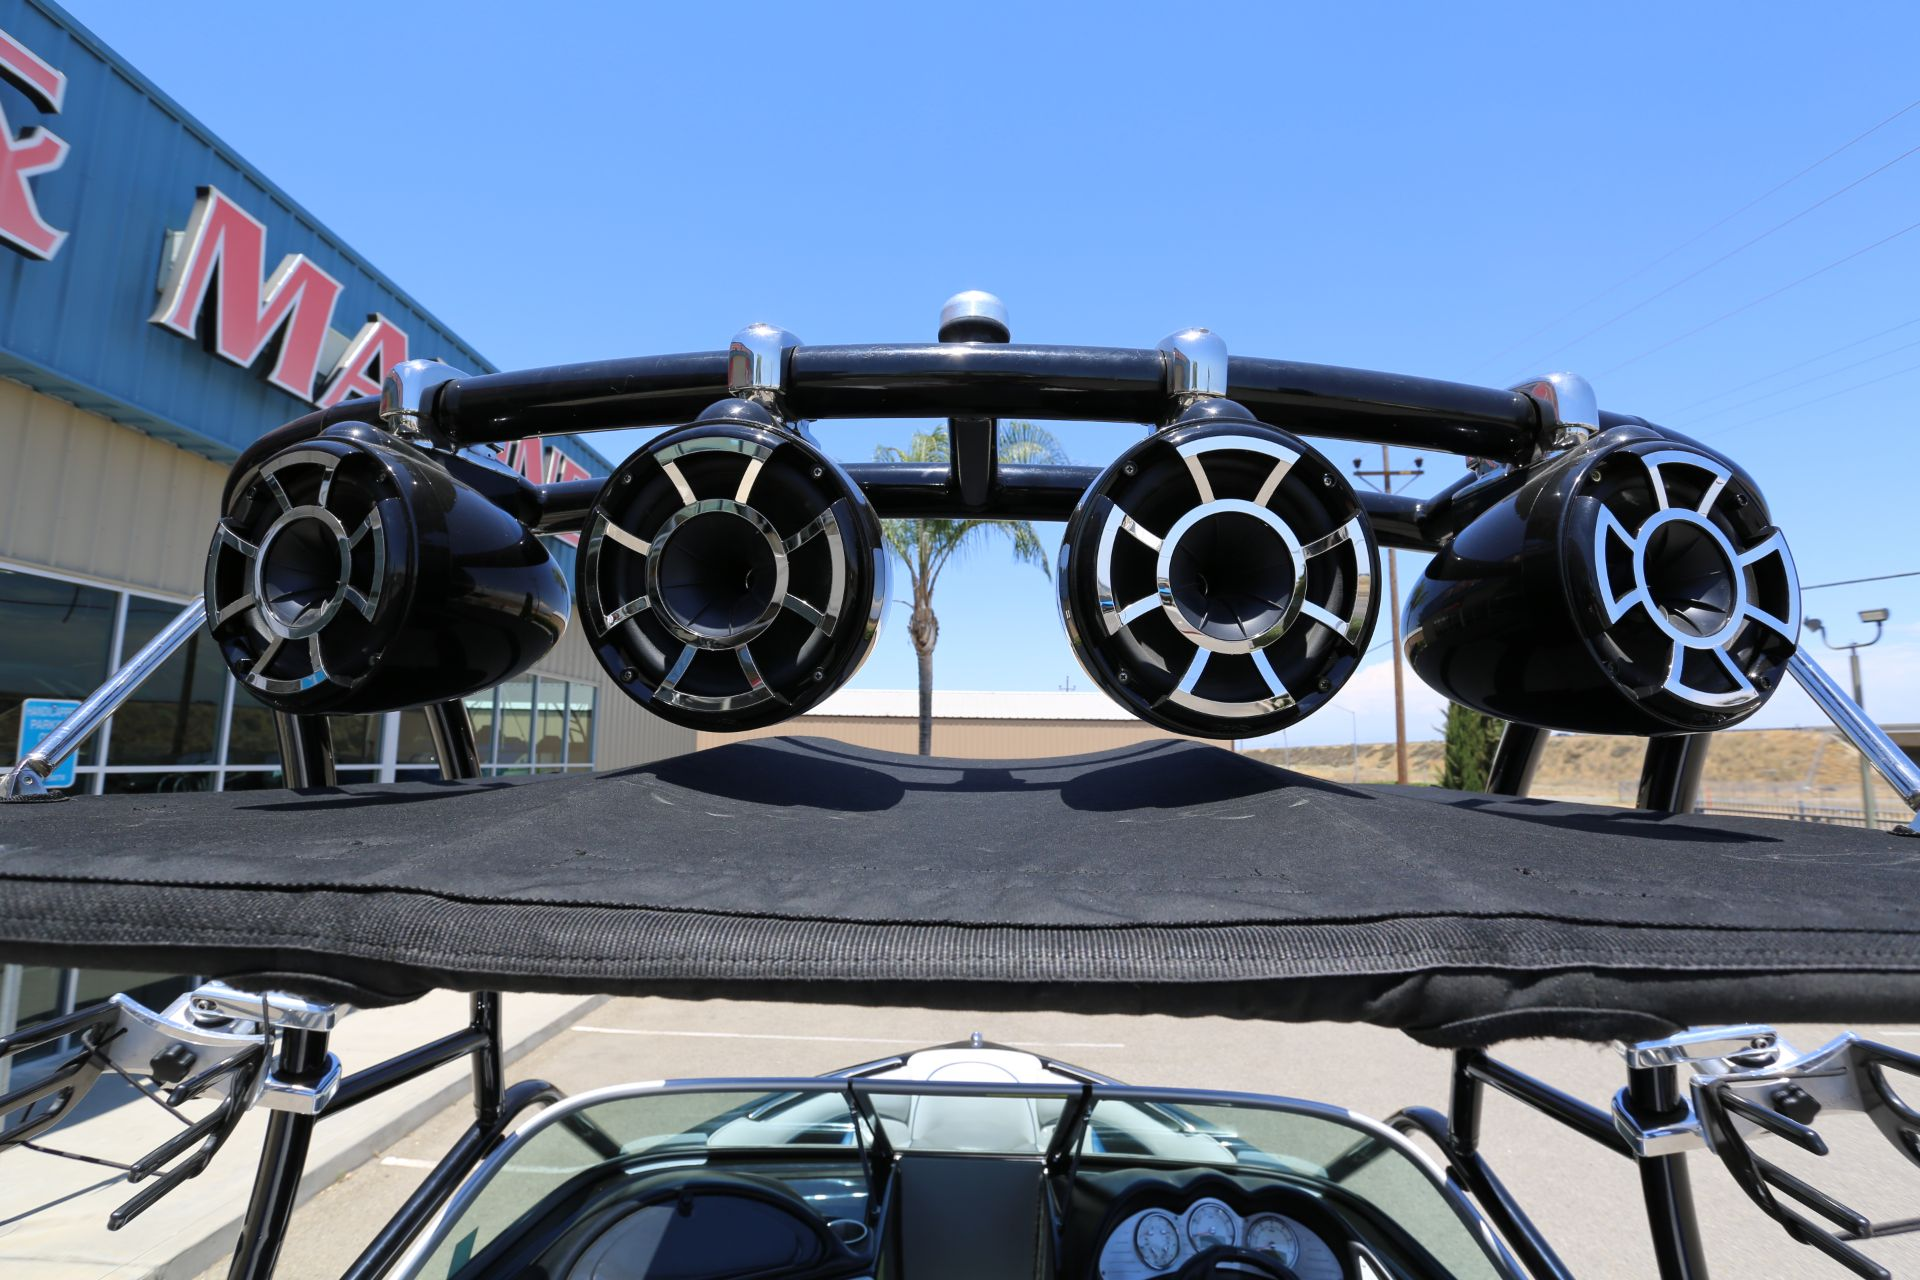 Boat Speakers And Audio Systems